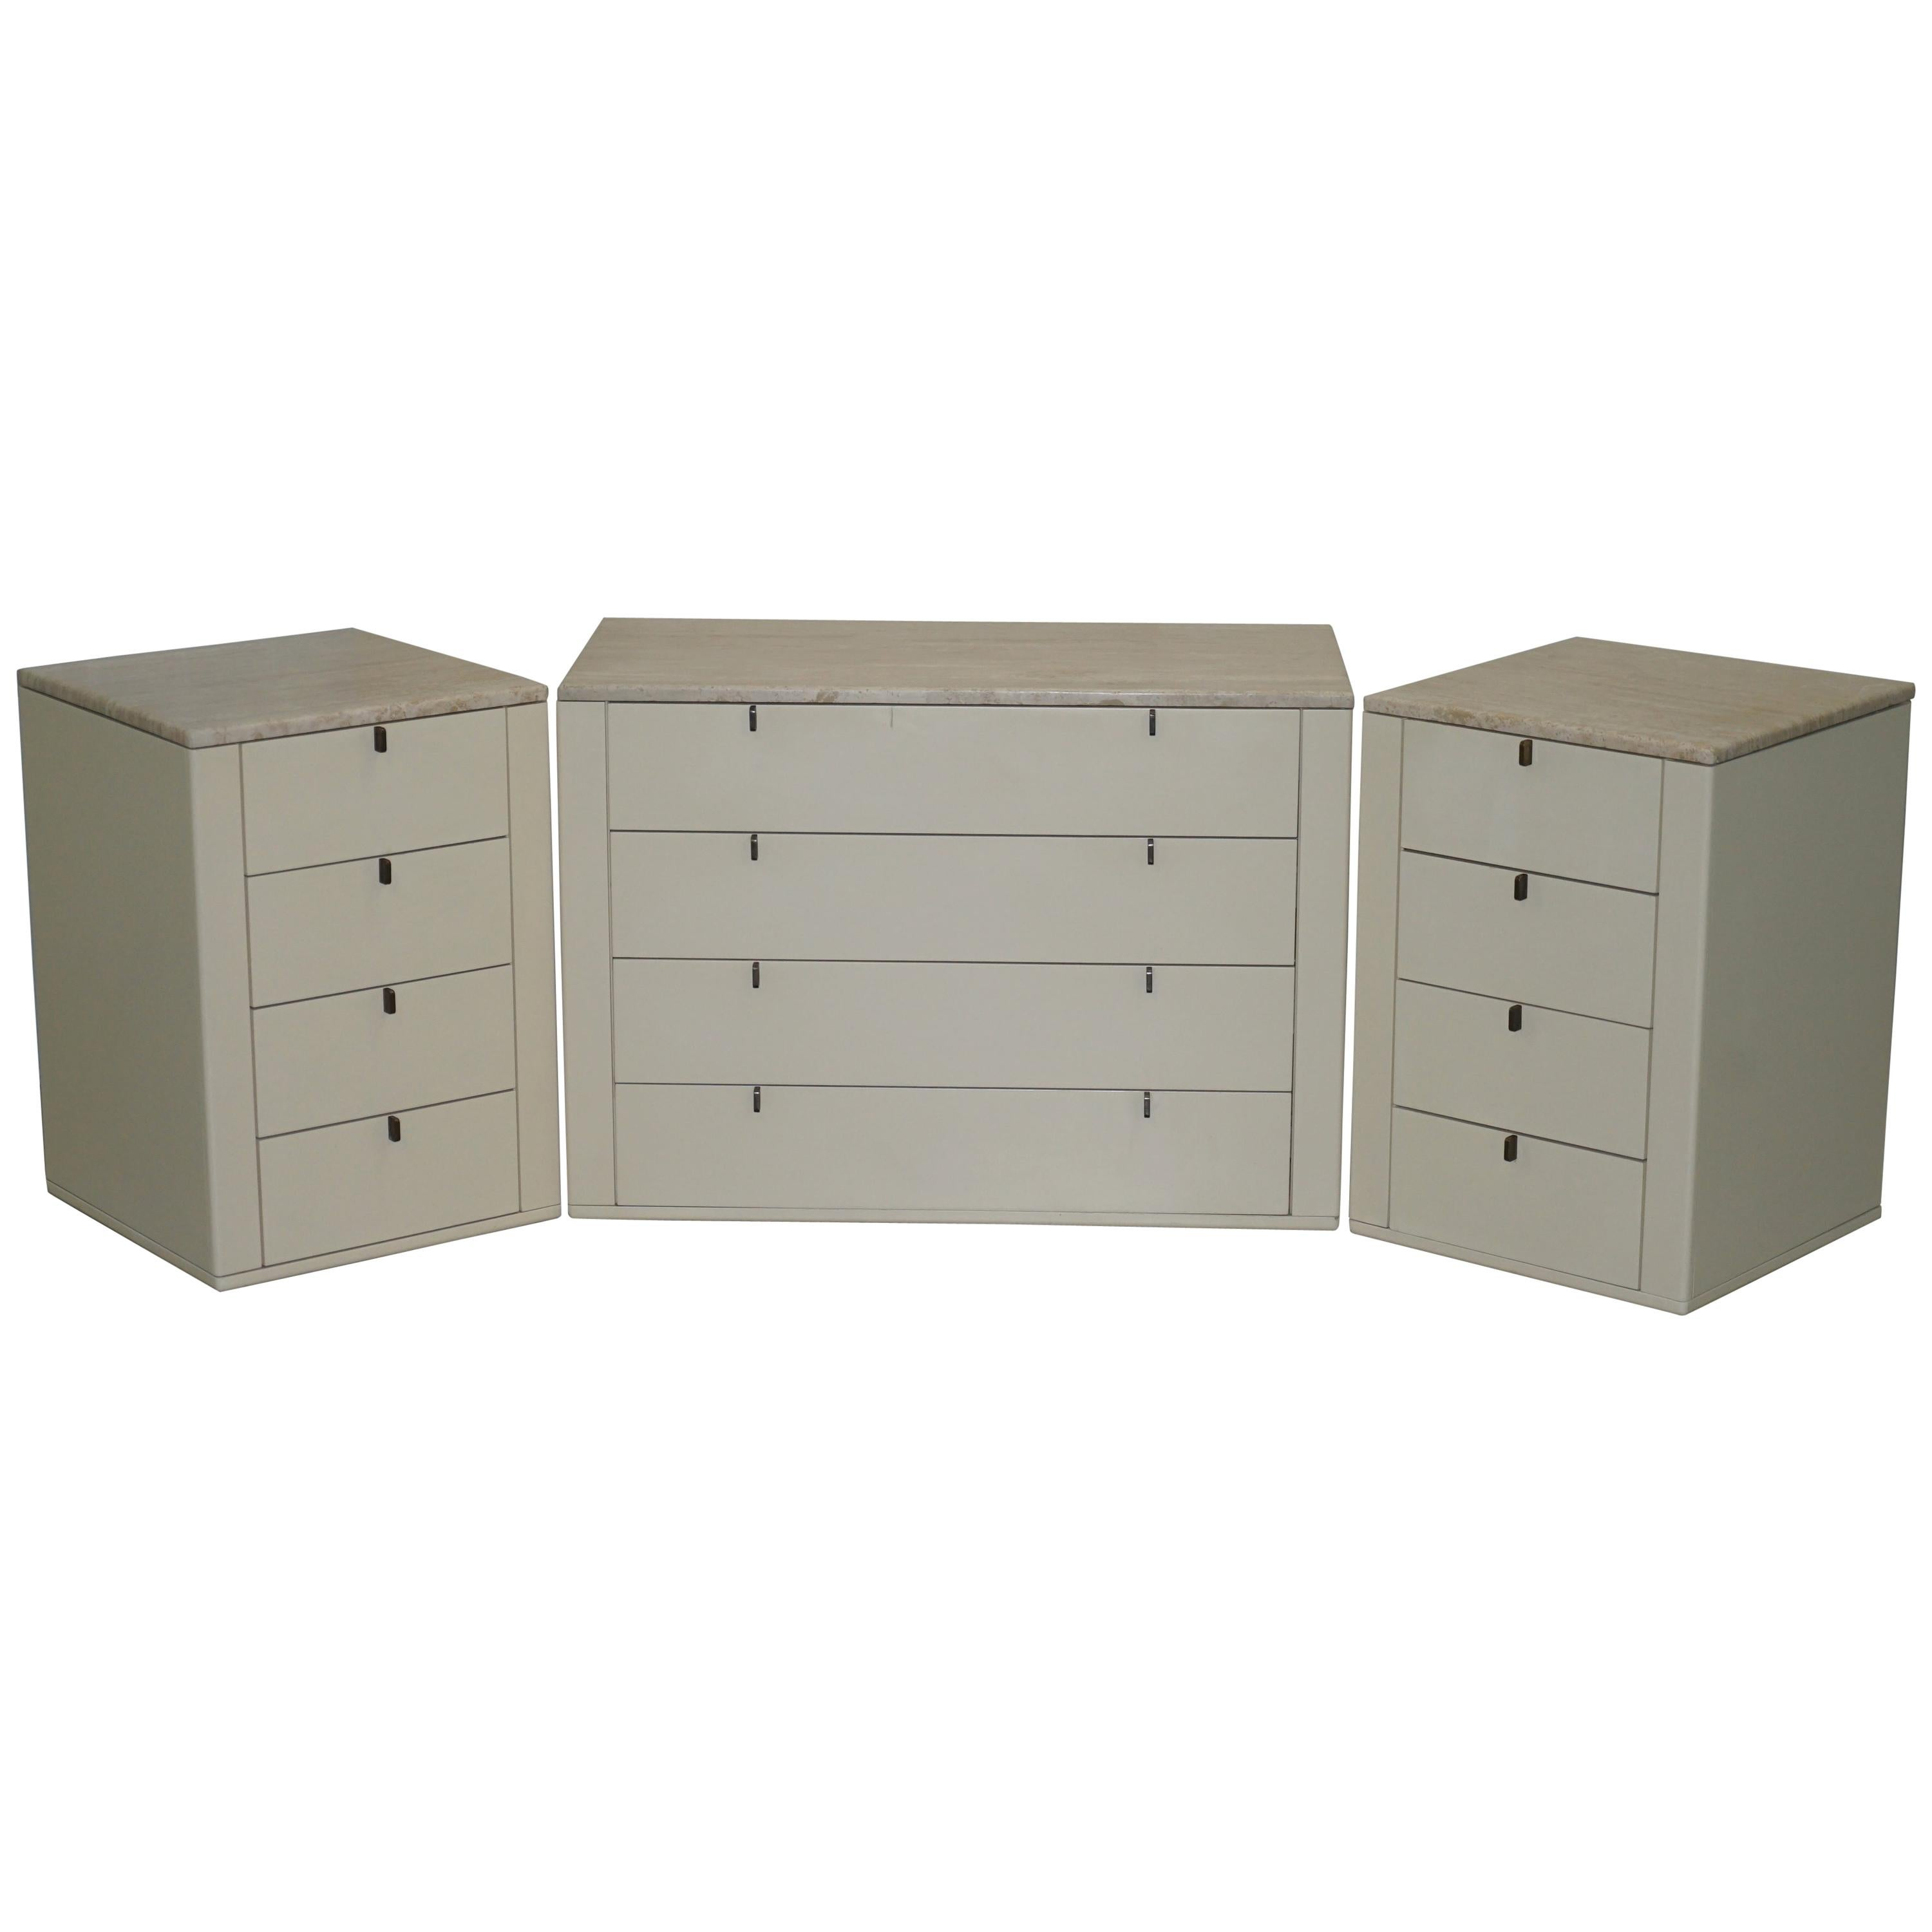 Interlubke Made in Germany Marble Topped Chest of and Pair of Bedside Drawers